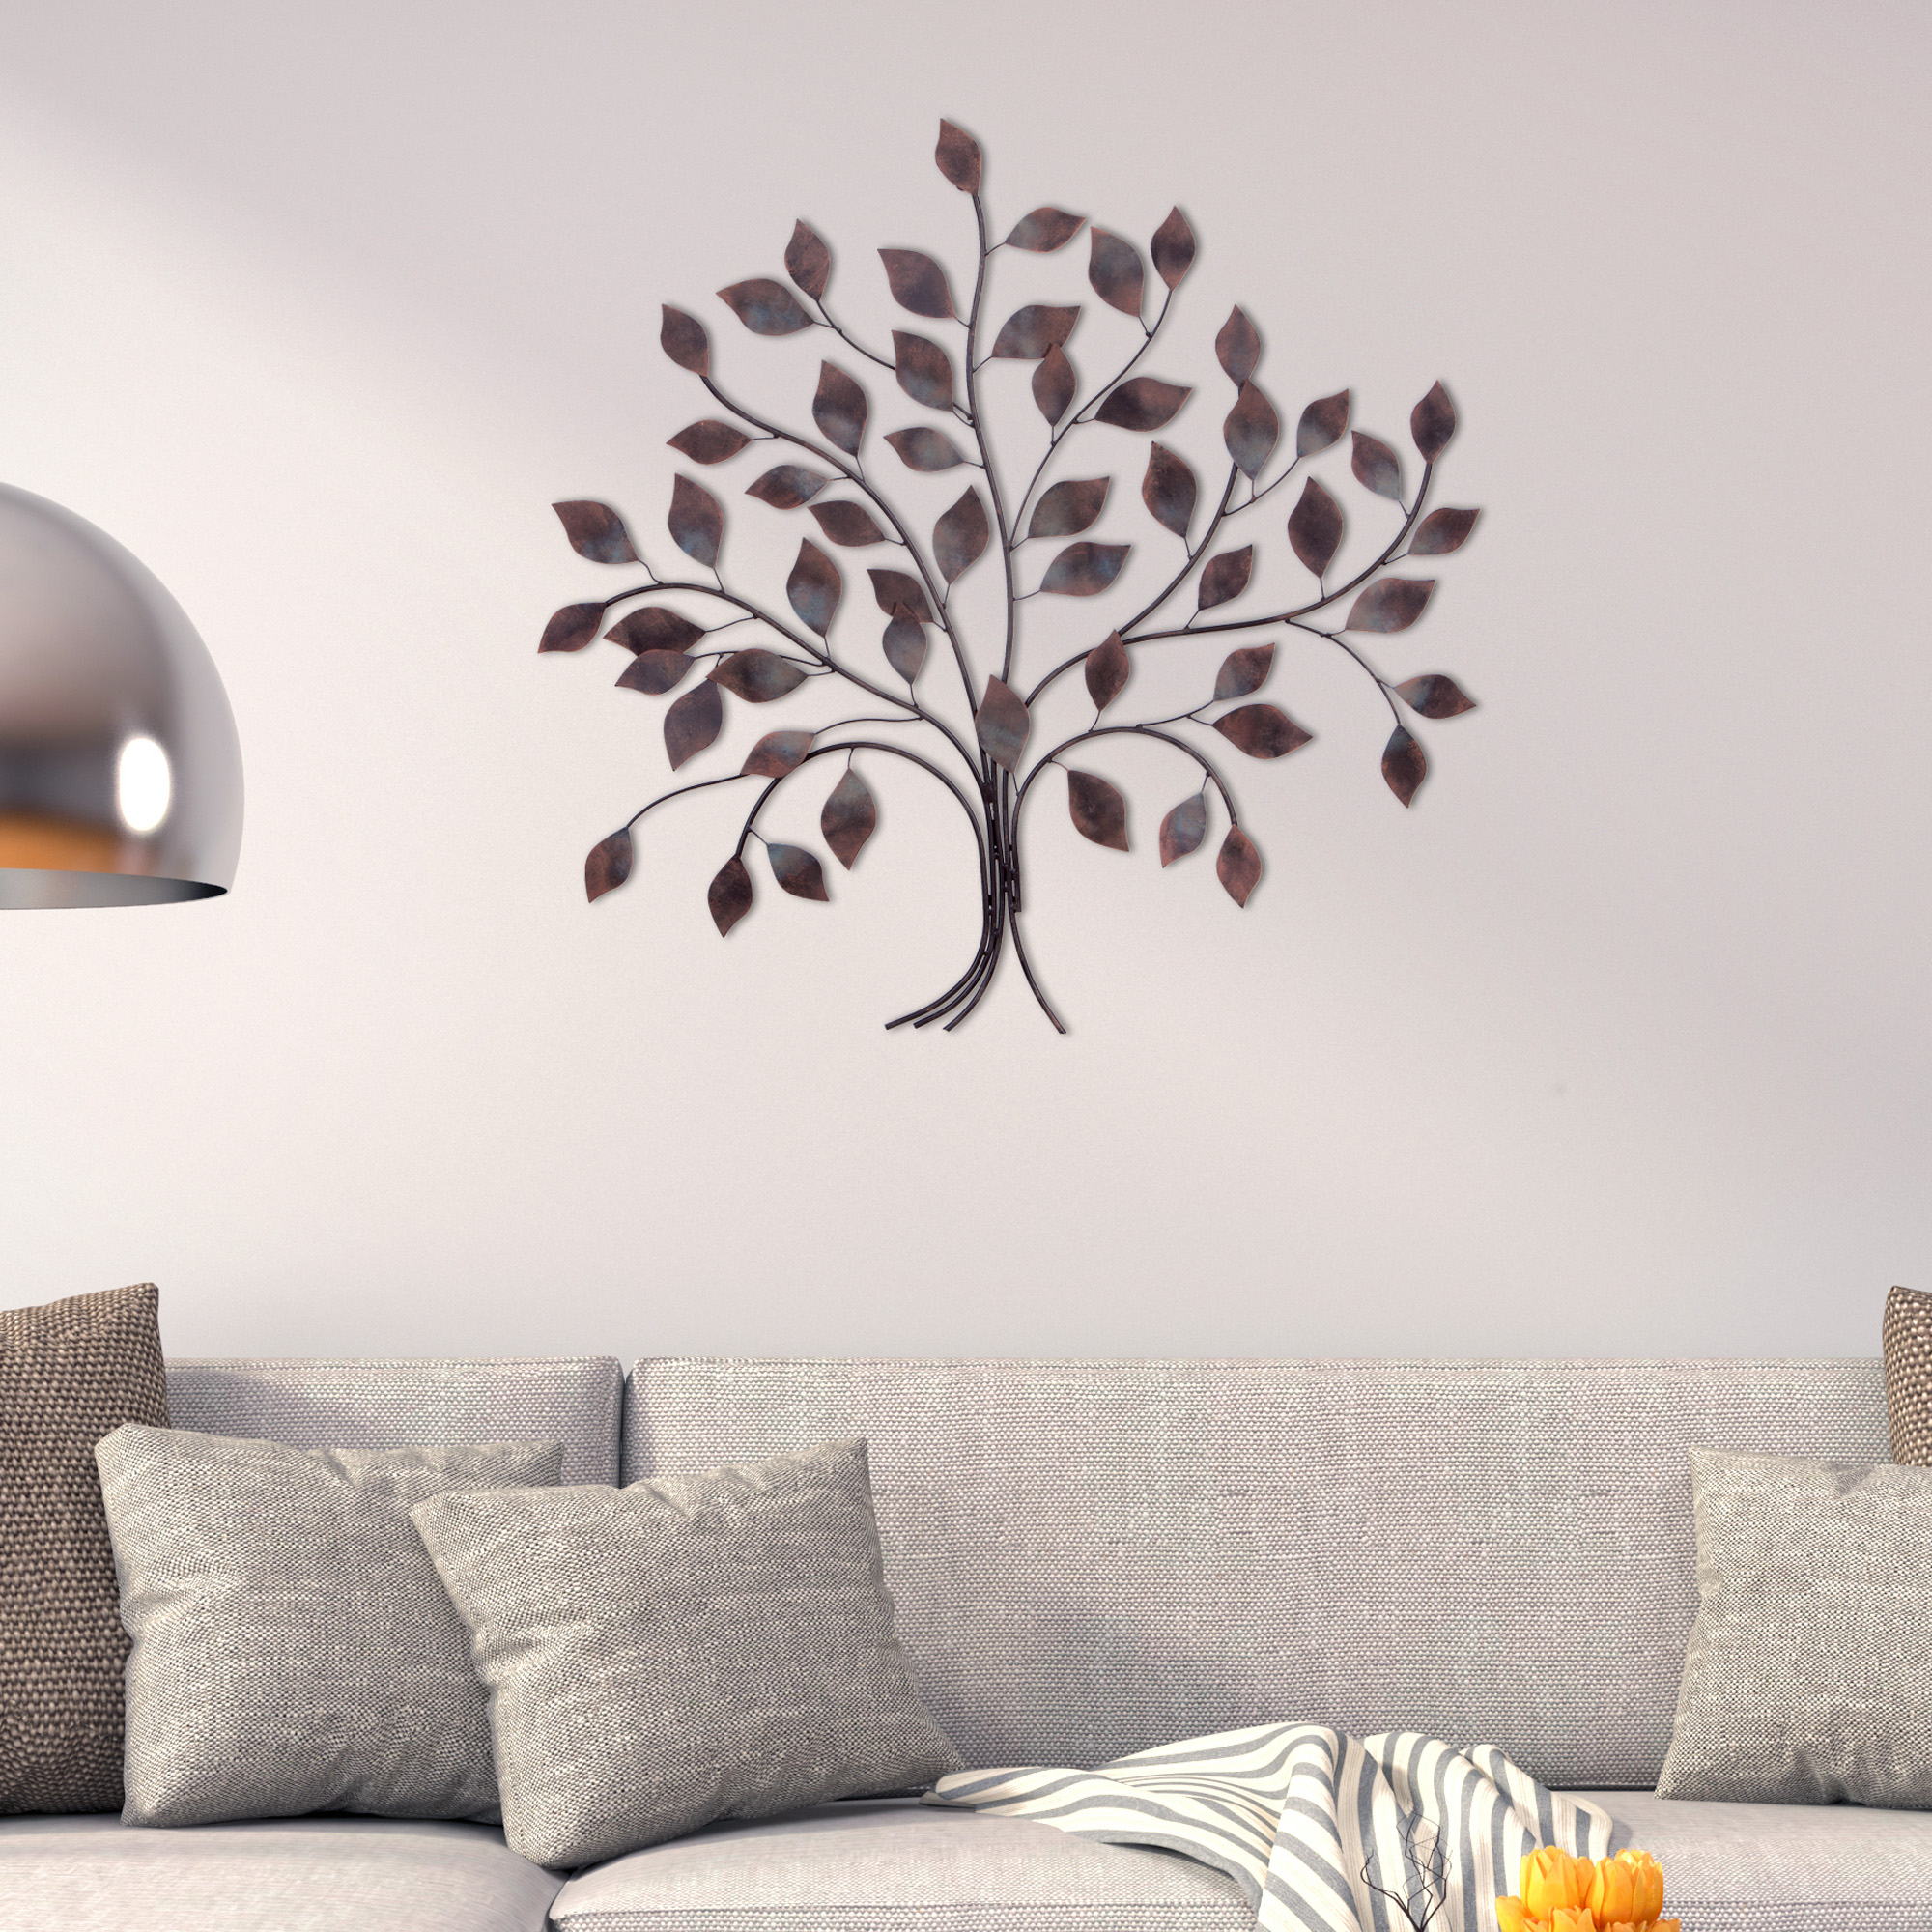 Patton Wall Decor Bronze Tree Branch Decorative Metal Wall Décor Within Best And Newest Oil Rubbed Metal Wall Decor (View 16 of 20)